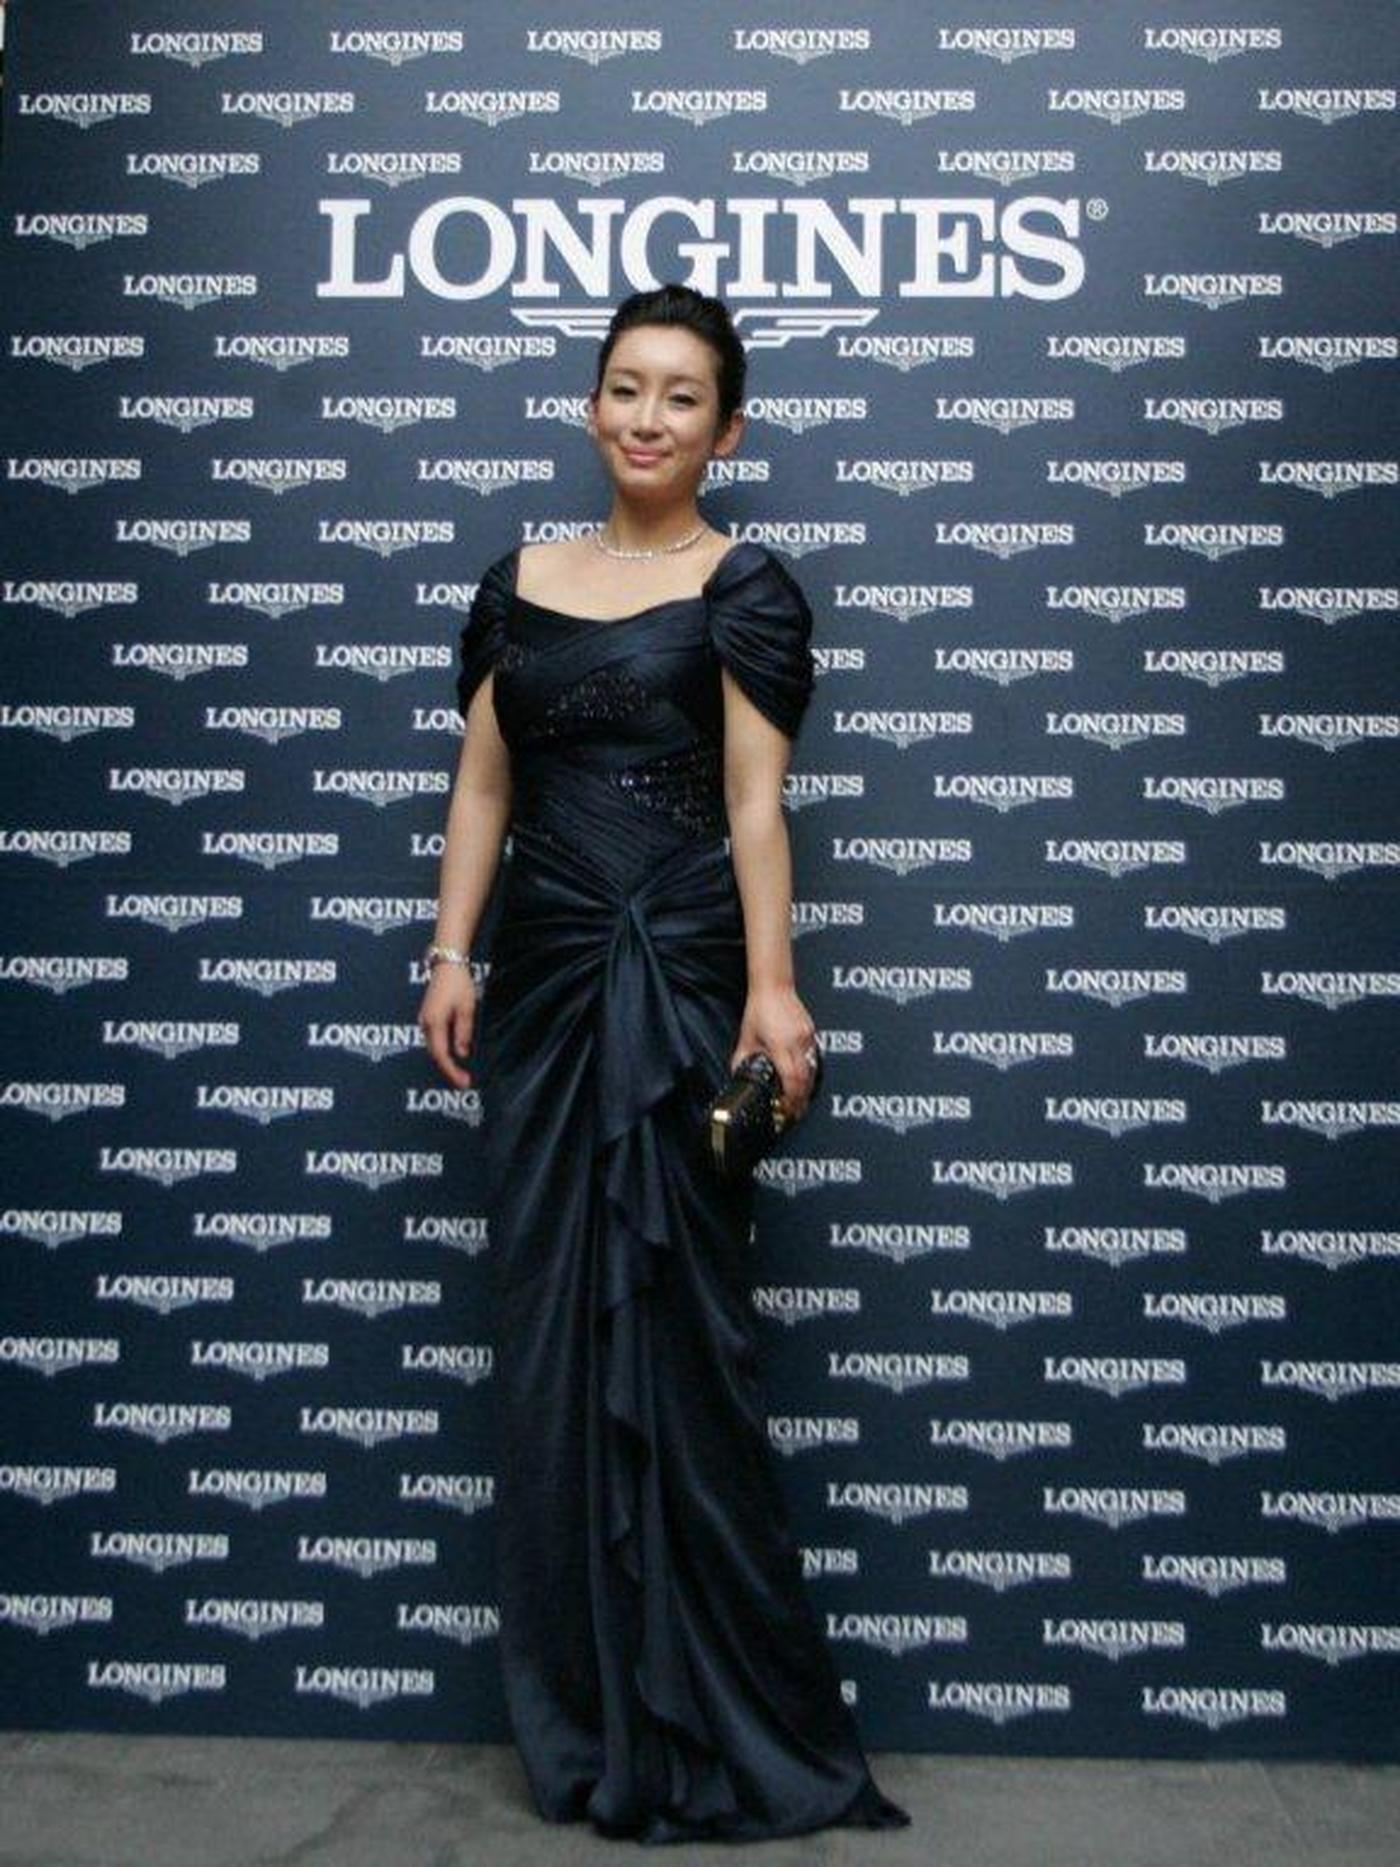 Longines Corporate Event: Kate Winslet reveals the new Longines Saint-Imier Collection in Shanghai 5